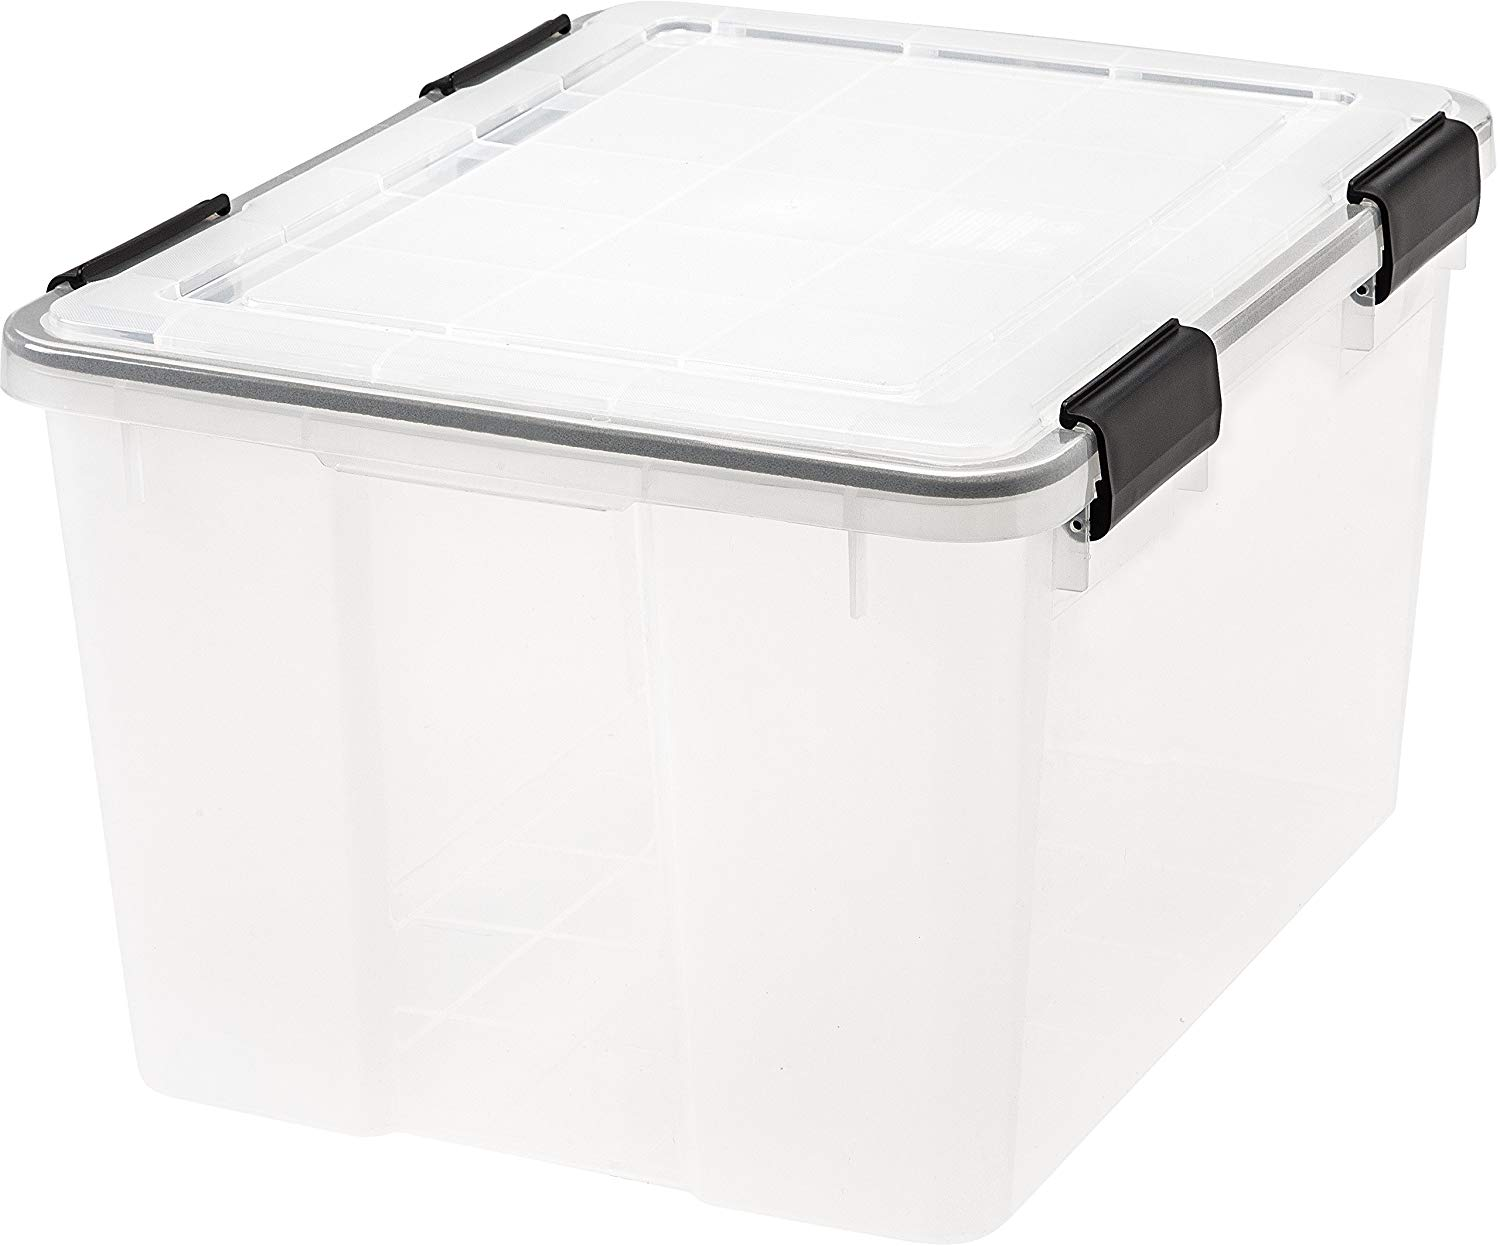 46 qt. Ultimate Airtight Box, 19.7 Inch x 15.8 Inch